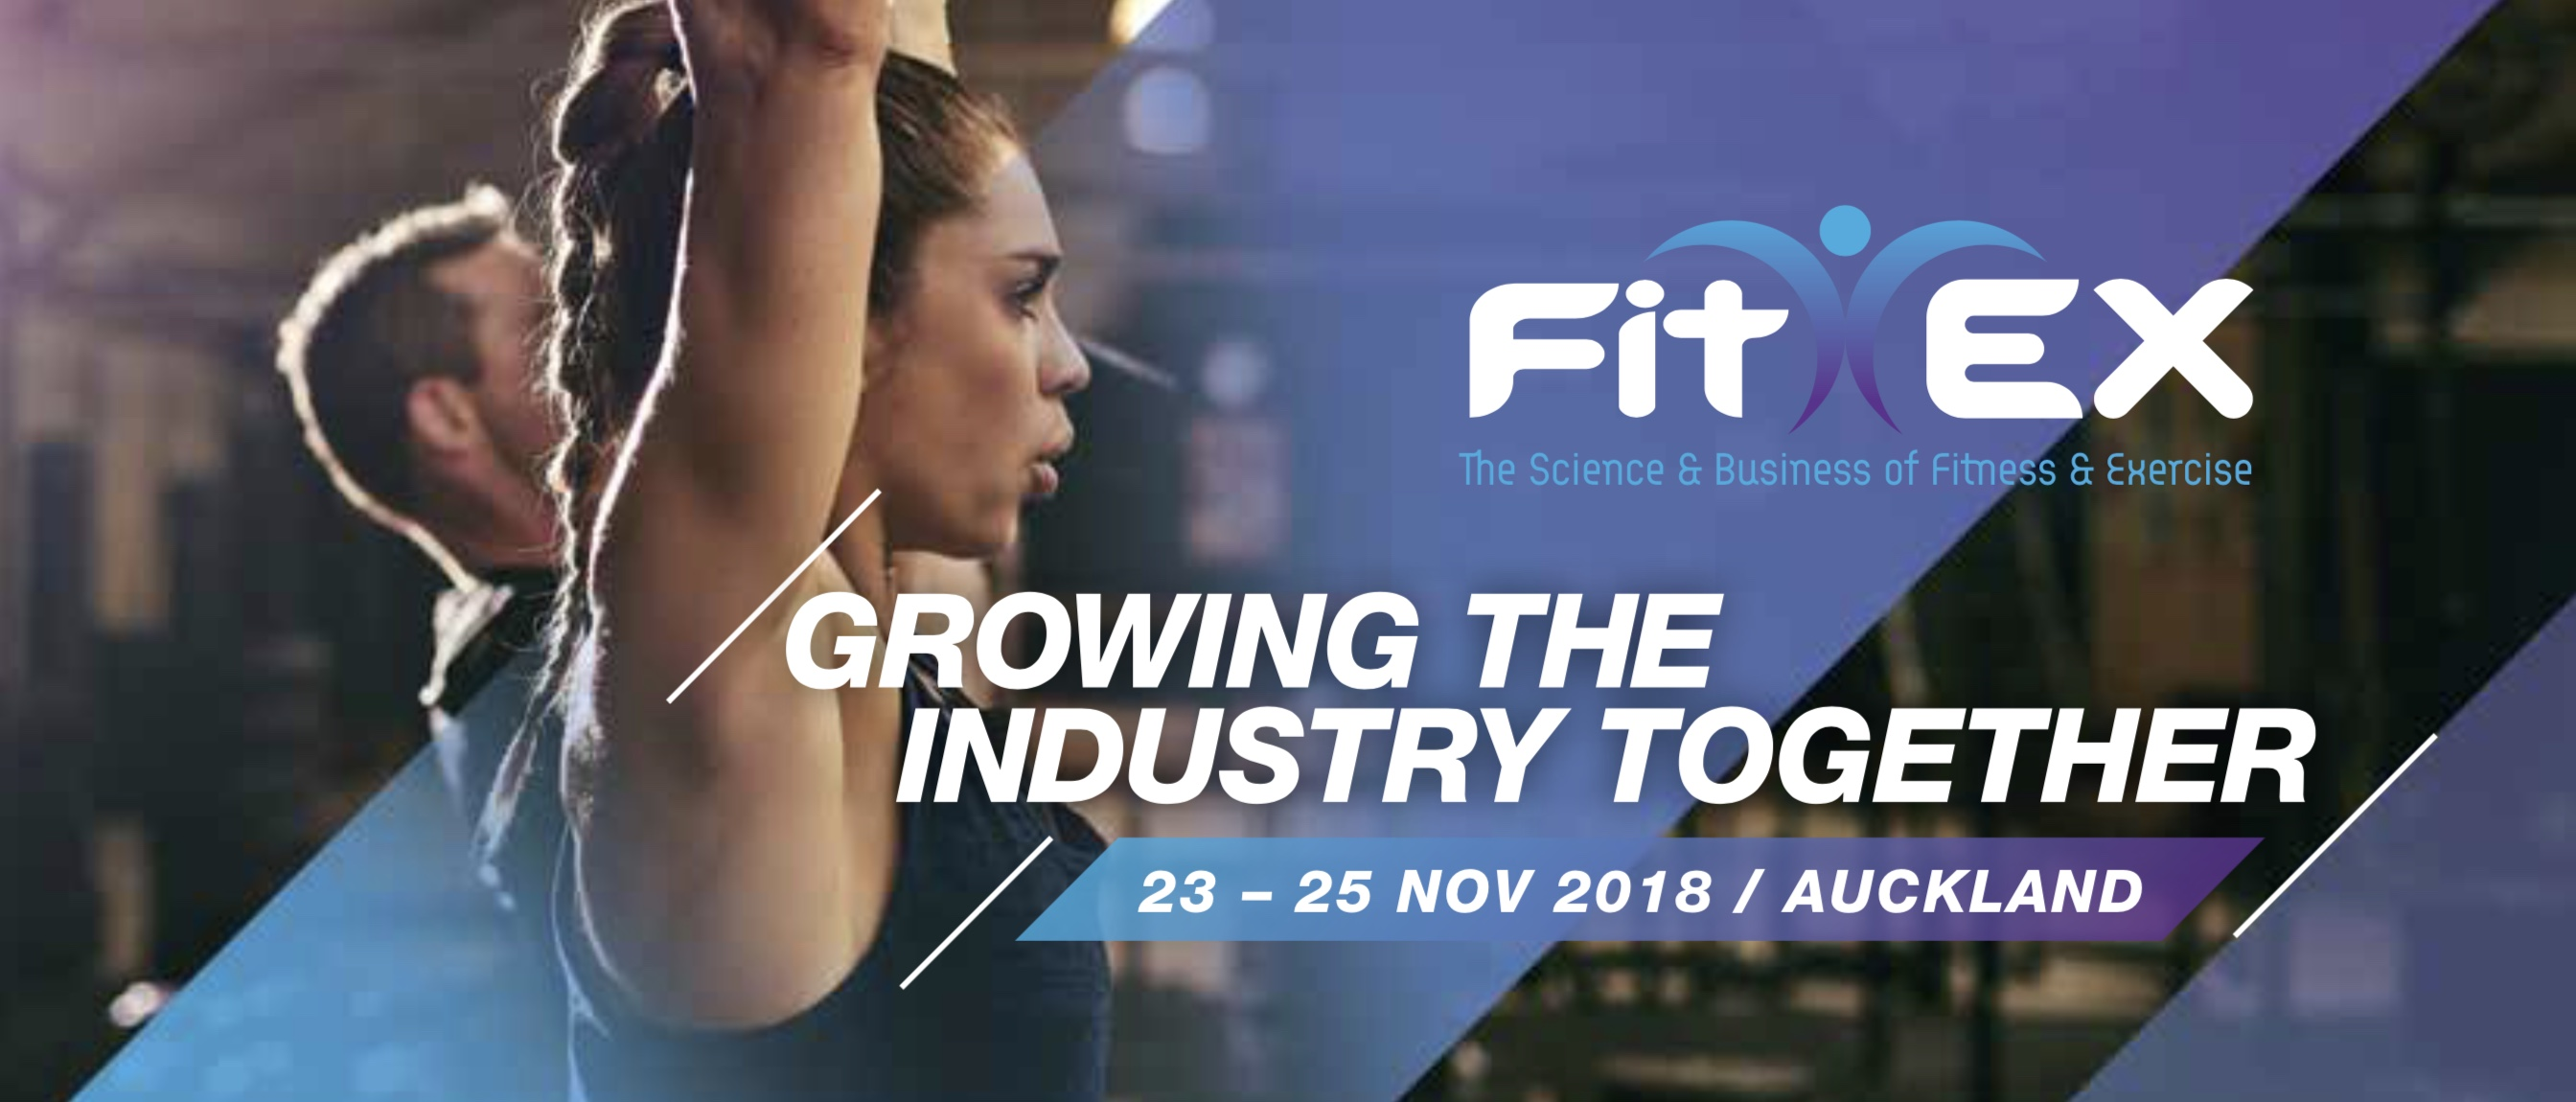 Fitex & Awards 2018